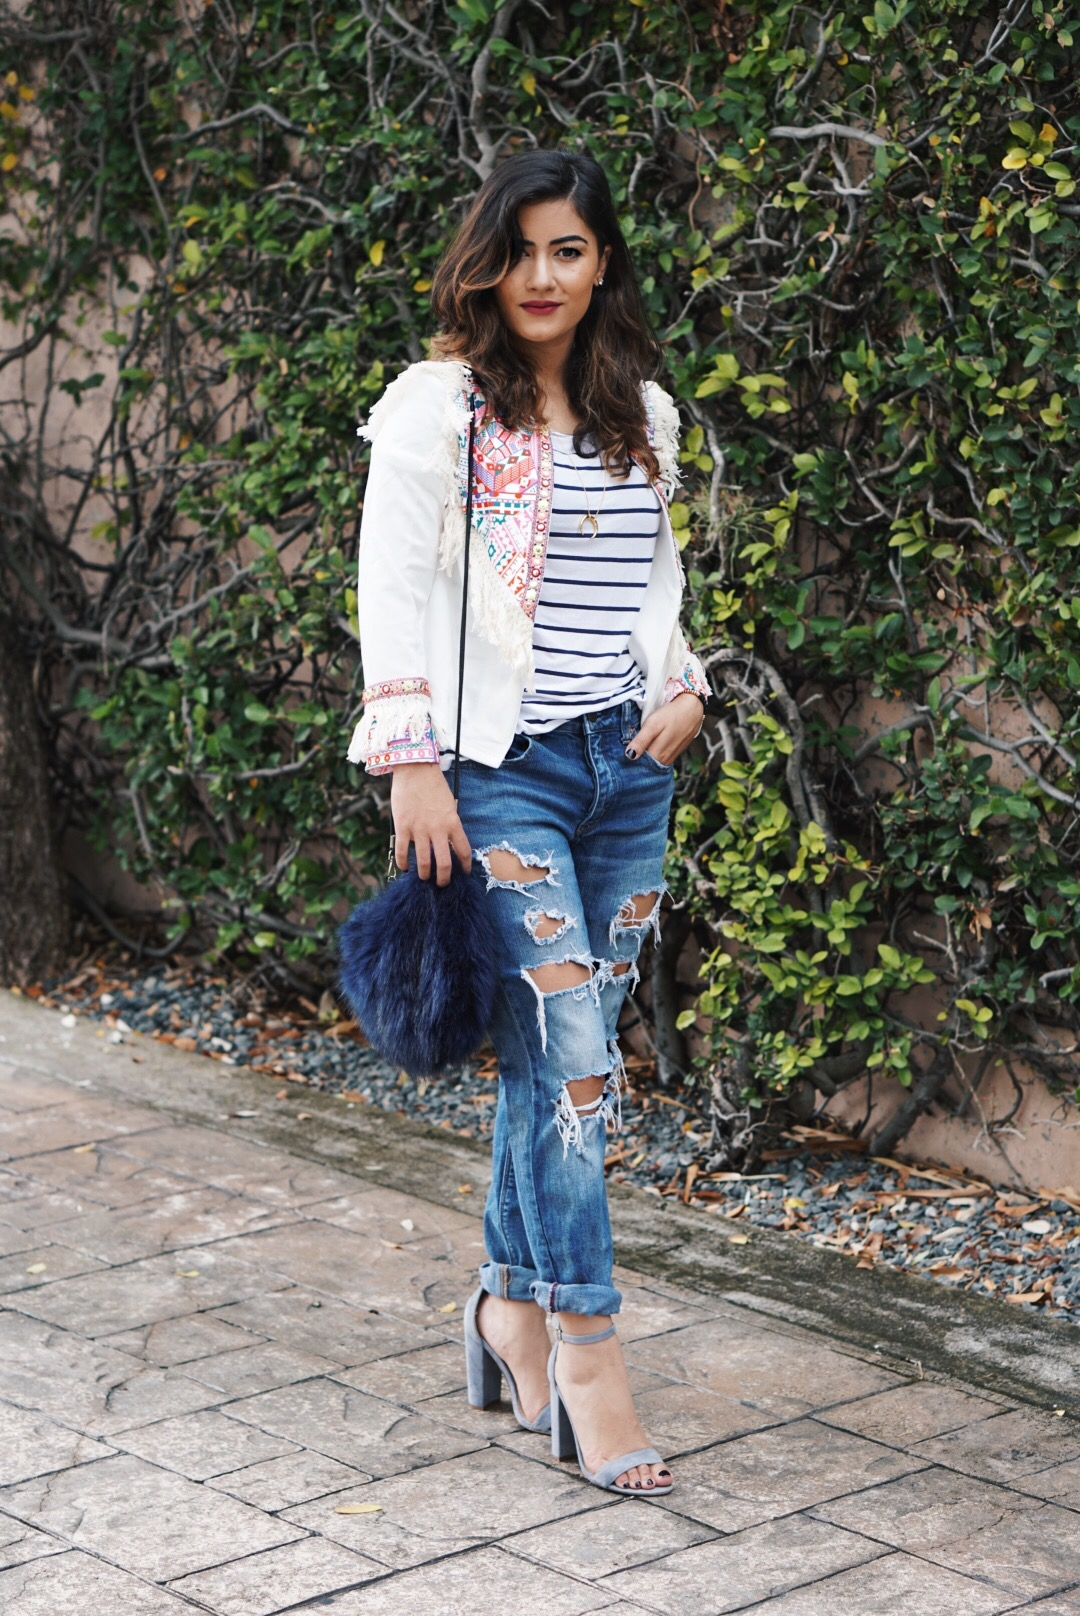 Statement Jacket with Fringe